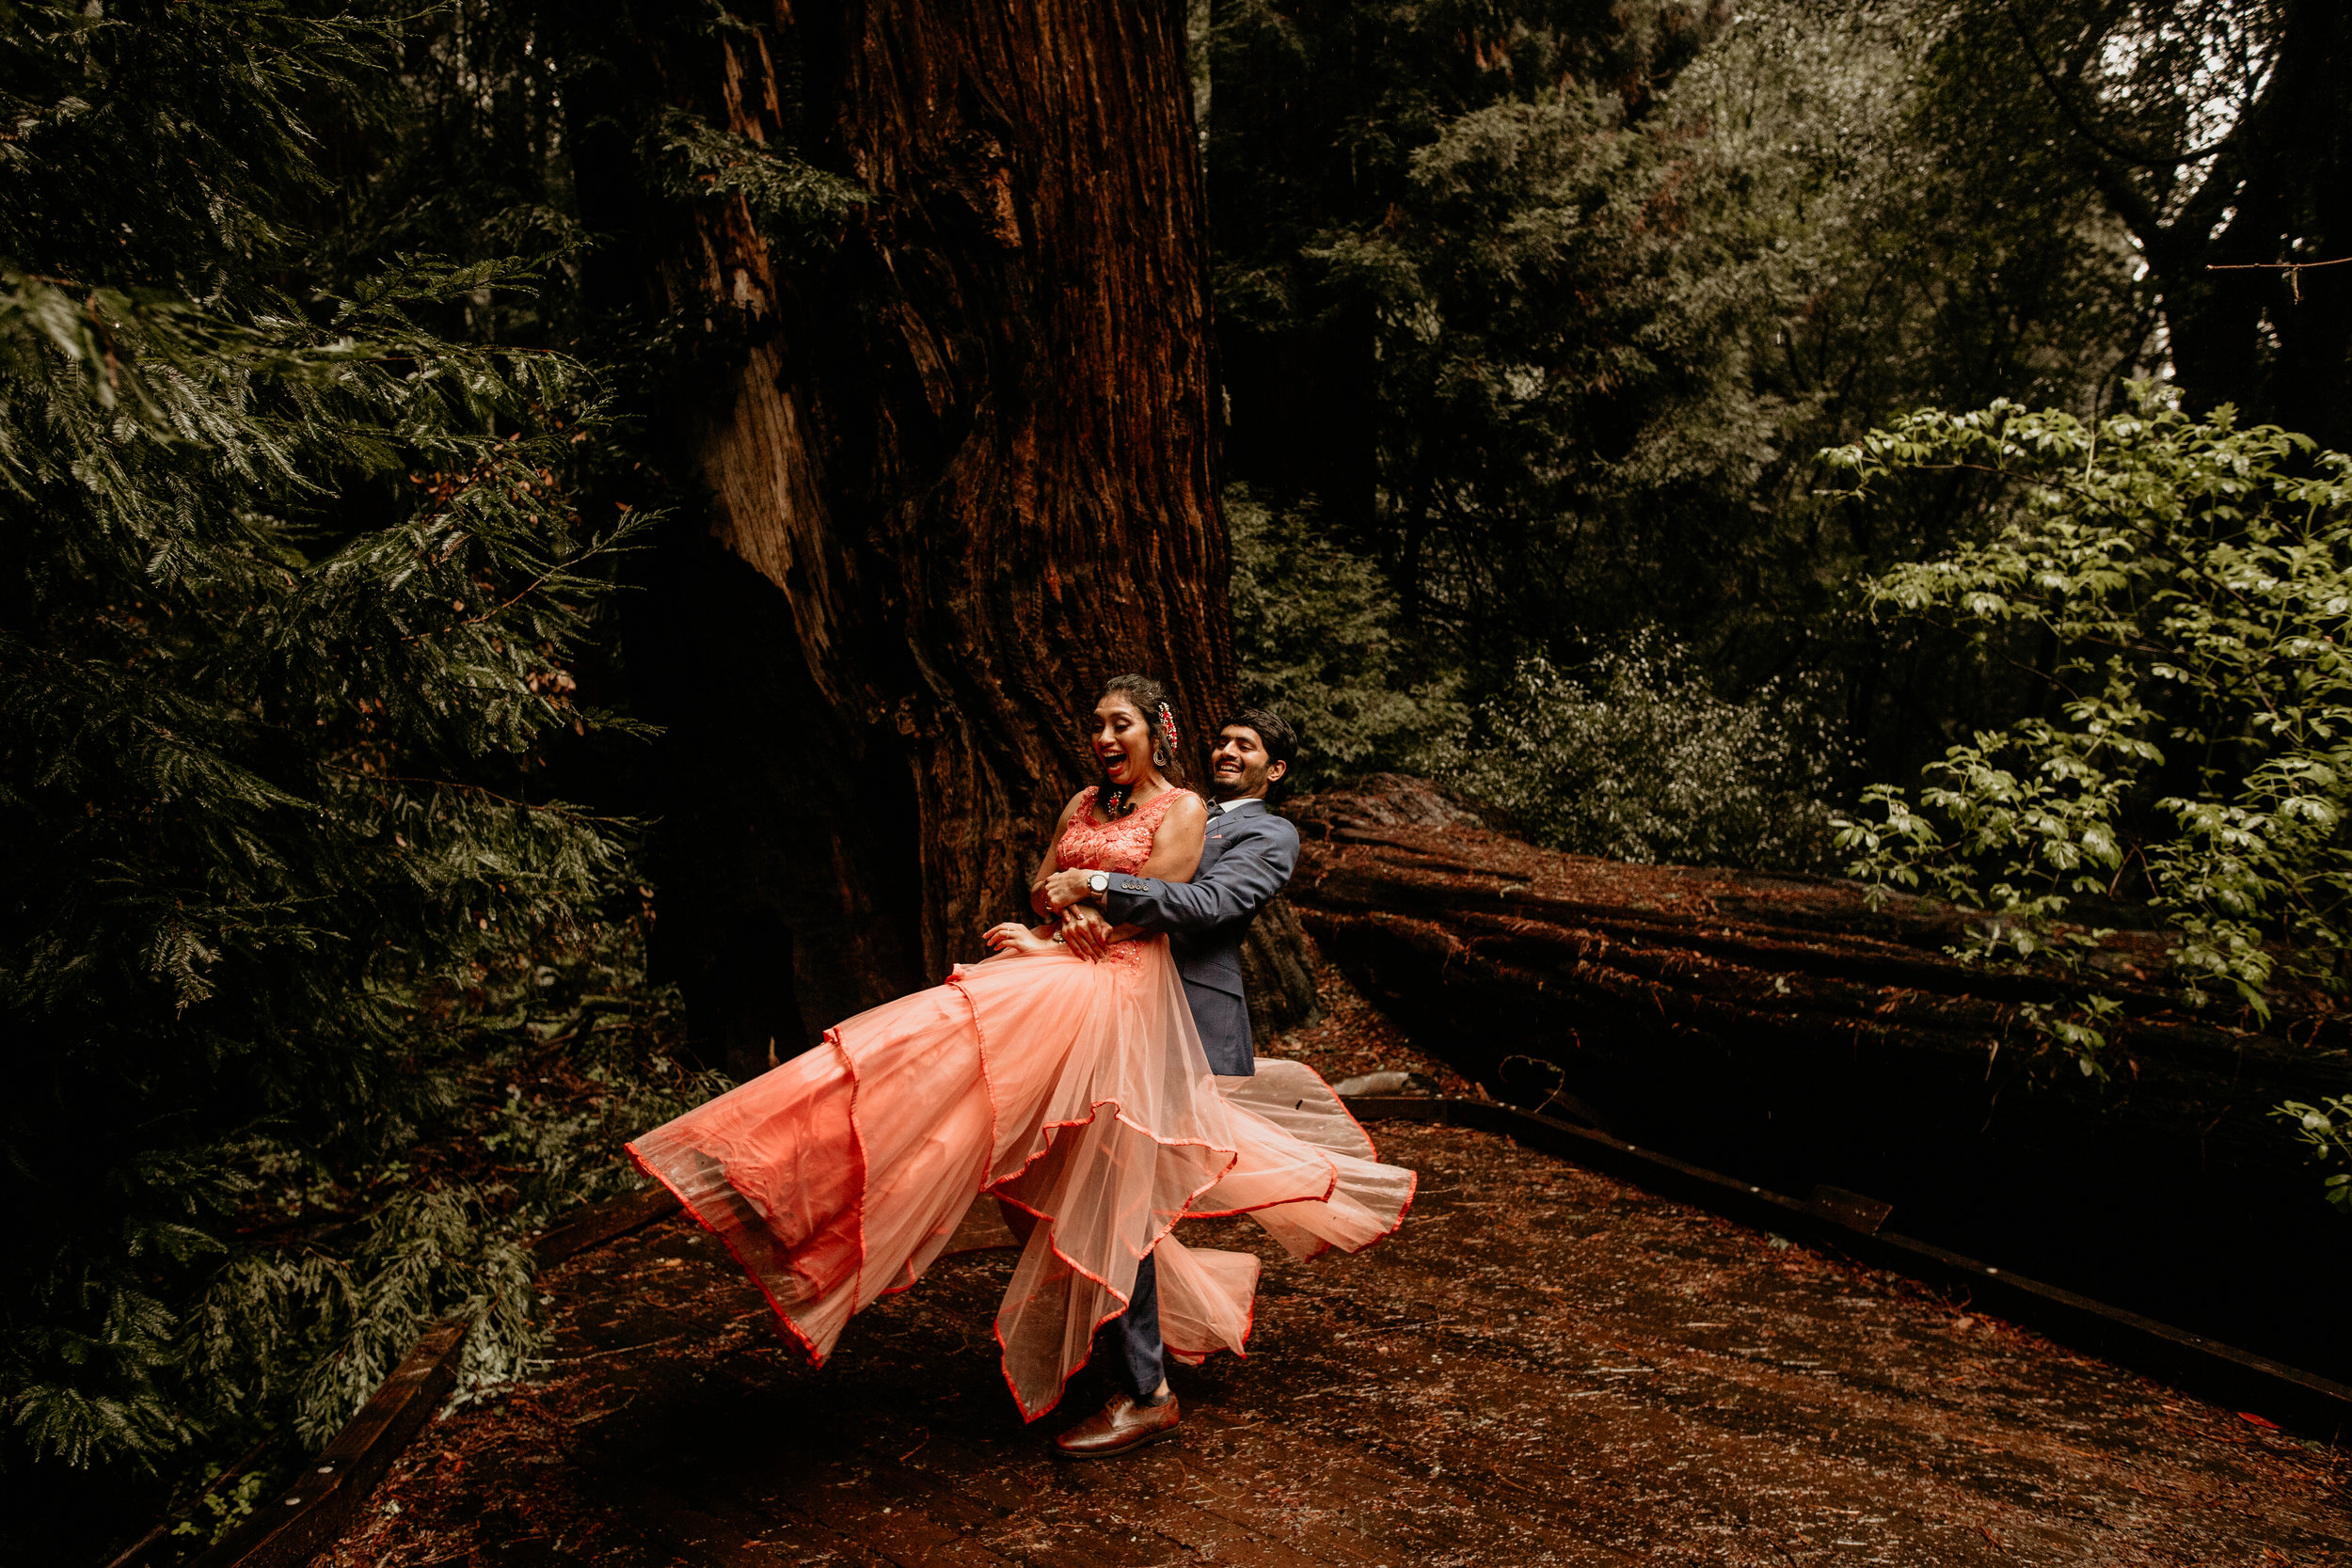 John Muir Woods elopement photographer, best elopement photographer in California, John Muir Woods elopement photographer, redwoods national park elopement photographer, California wedding photographer, elopement wedding photography, hire wedding photographers in California, California wedding photographer, elopement wedding photographer, san fransisco wedding photographer, redwoods national park, John Muir Woods state park, John Muir Woods wedding photography, John Muir Woods elopement photography, John muir engagement photos, California wedding photographer, san fransisco wedding photography, California elopement photography, John Muir Woods wedding photographer, john Muir Woods wedding photographer, san fransisco elopement photography, John Muir Woods hiking elopement, John Muir Woods hiking elopement